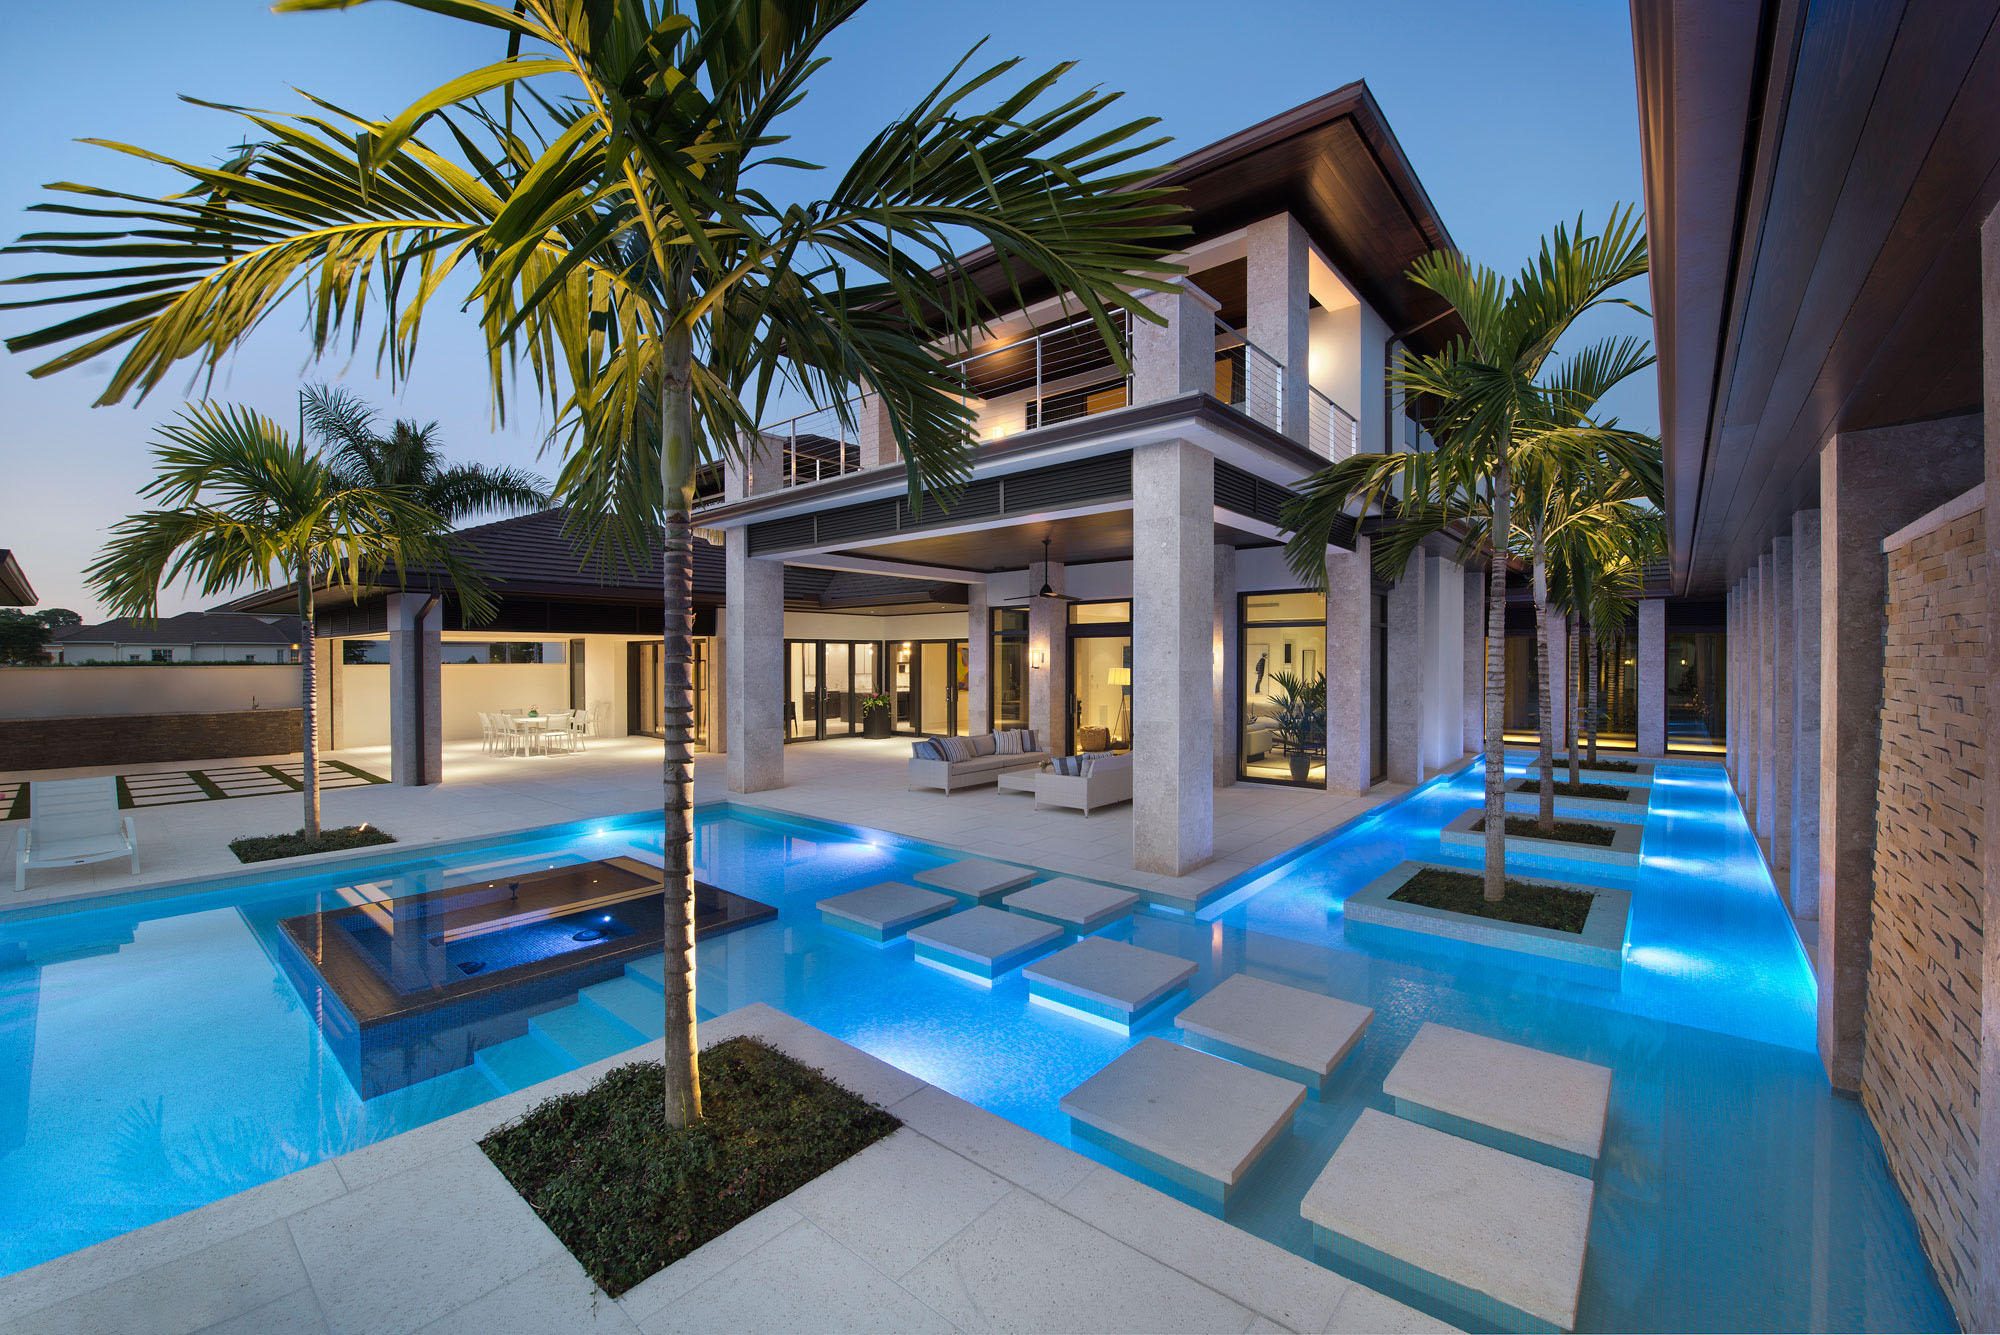 With Elegant Swimming Pool Contemporary Dream Home